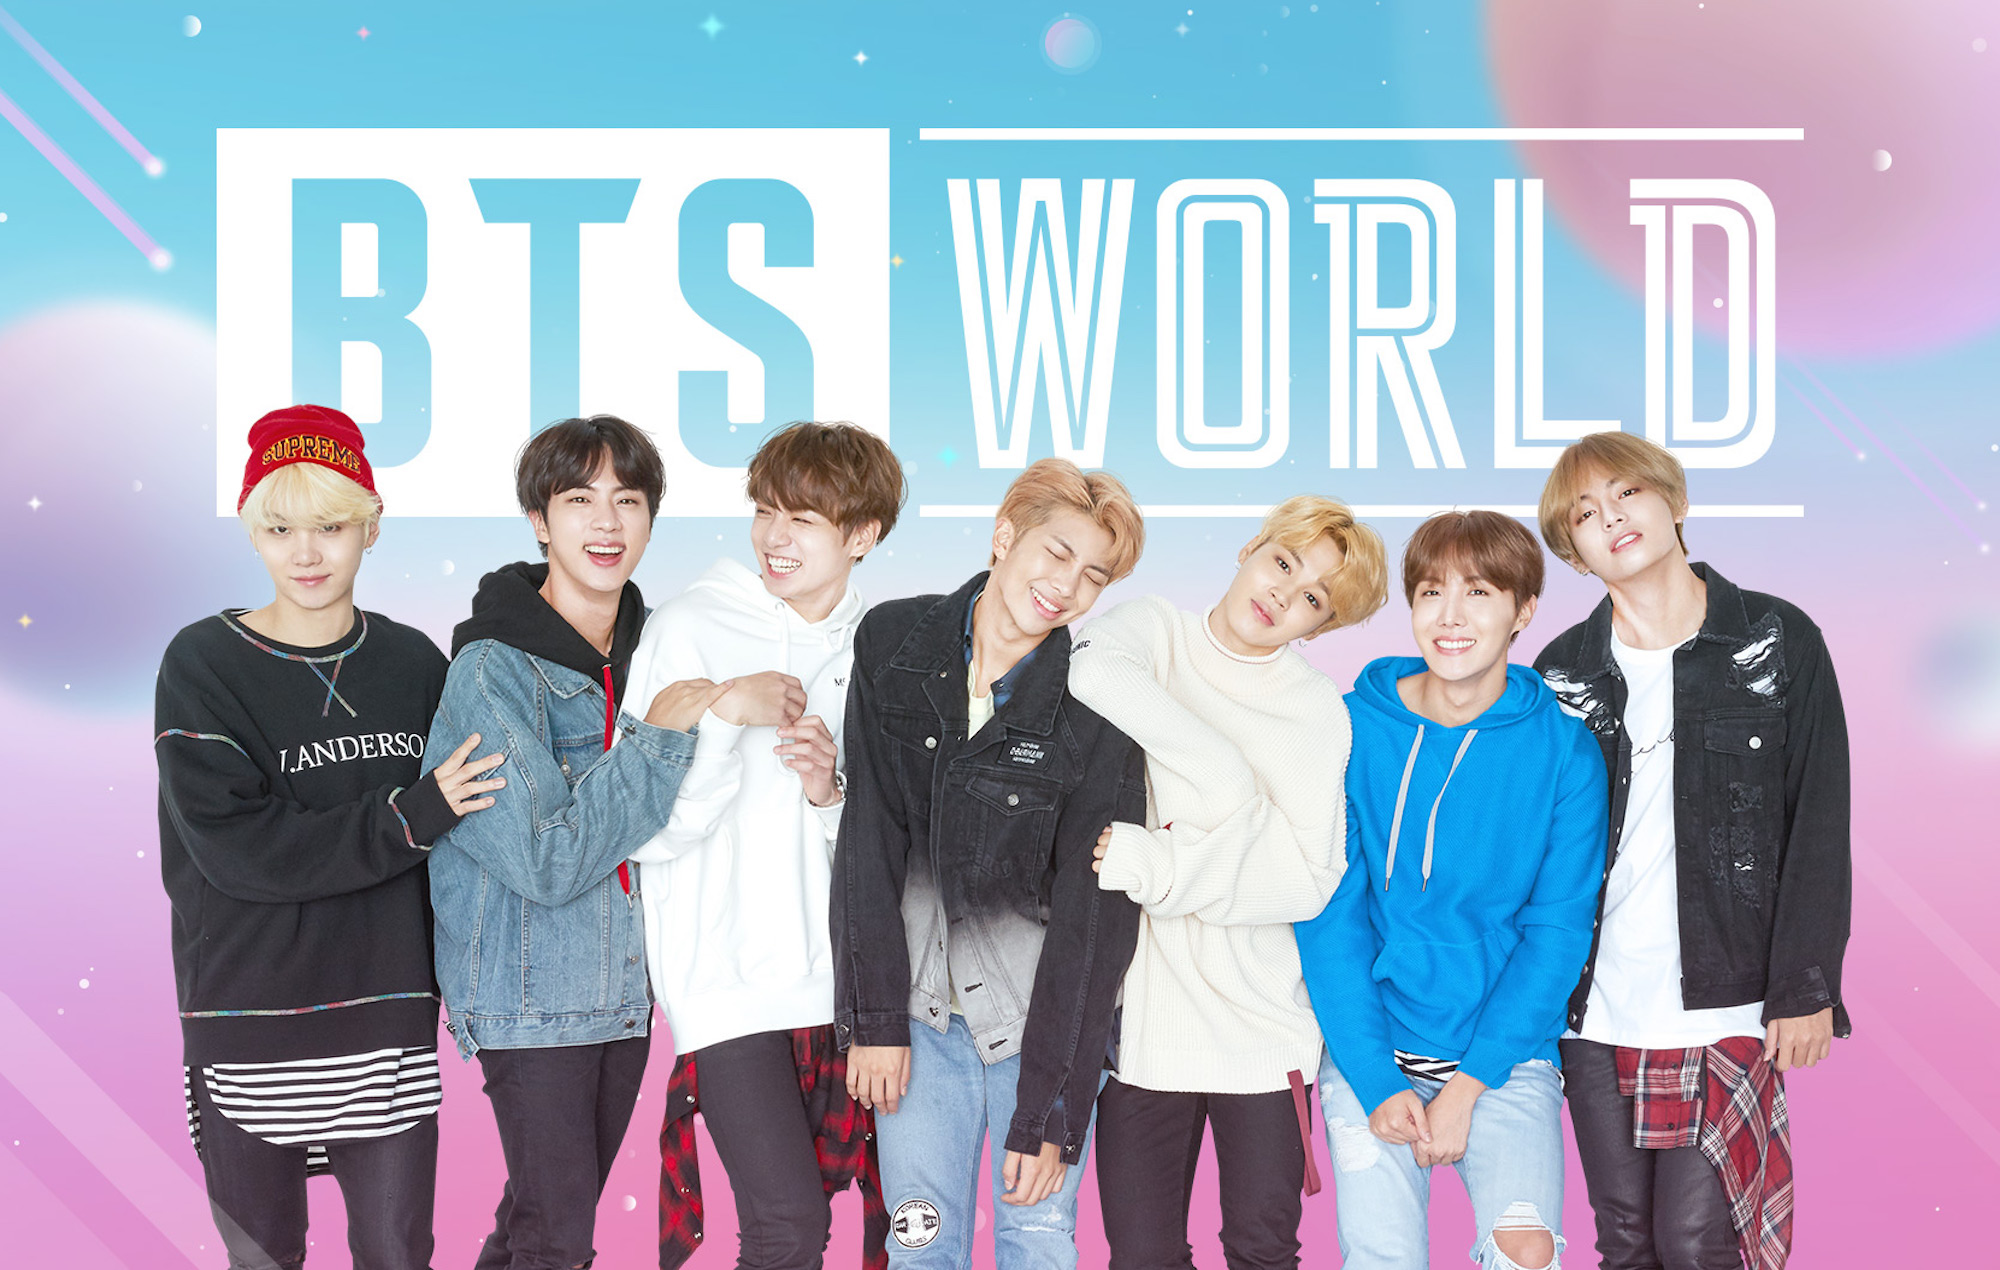 The Coolest Cutest And Oddest Moments In Bts World Bts Brand